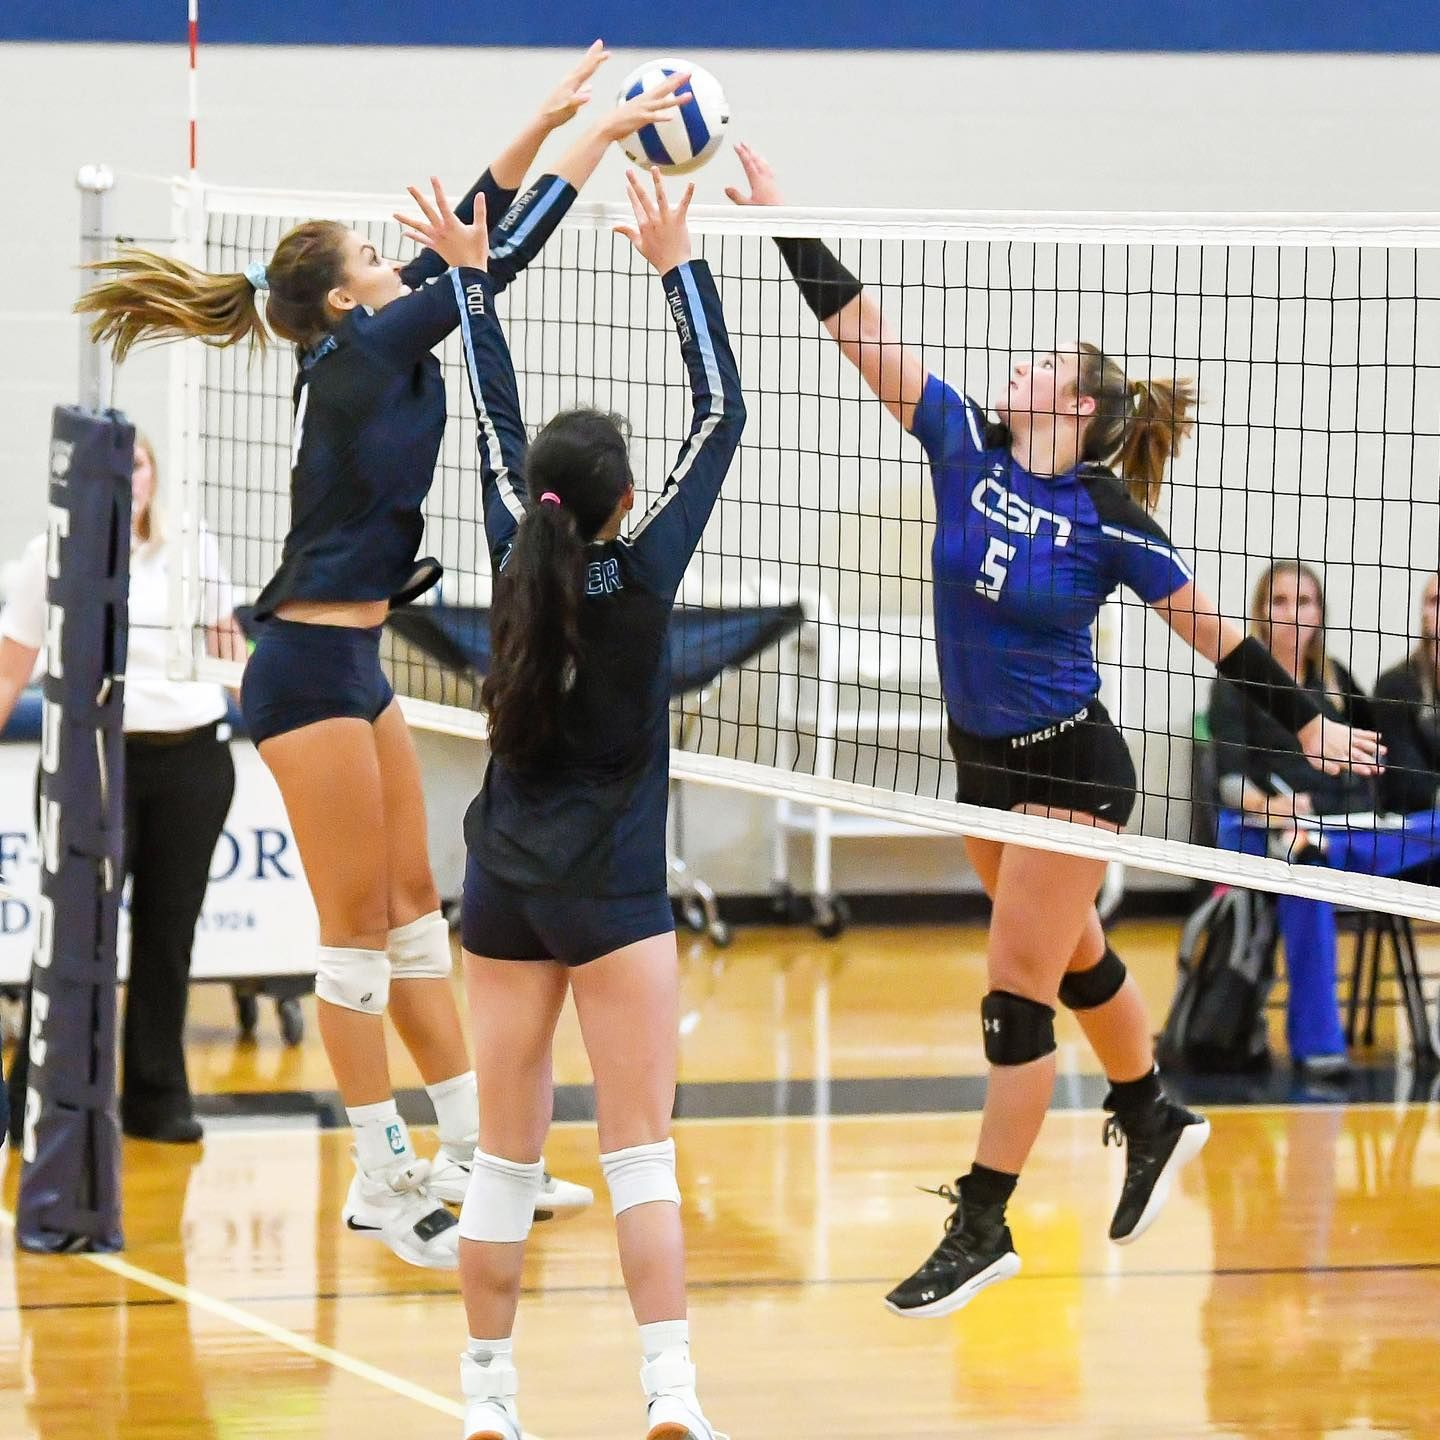 Denied Highschoovolleyball Odavball Odathunder Odavolleyball Volleyball Sportsphotography Maxpreps Womensports In 2020 Volleyball Basketball Court Sports